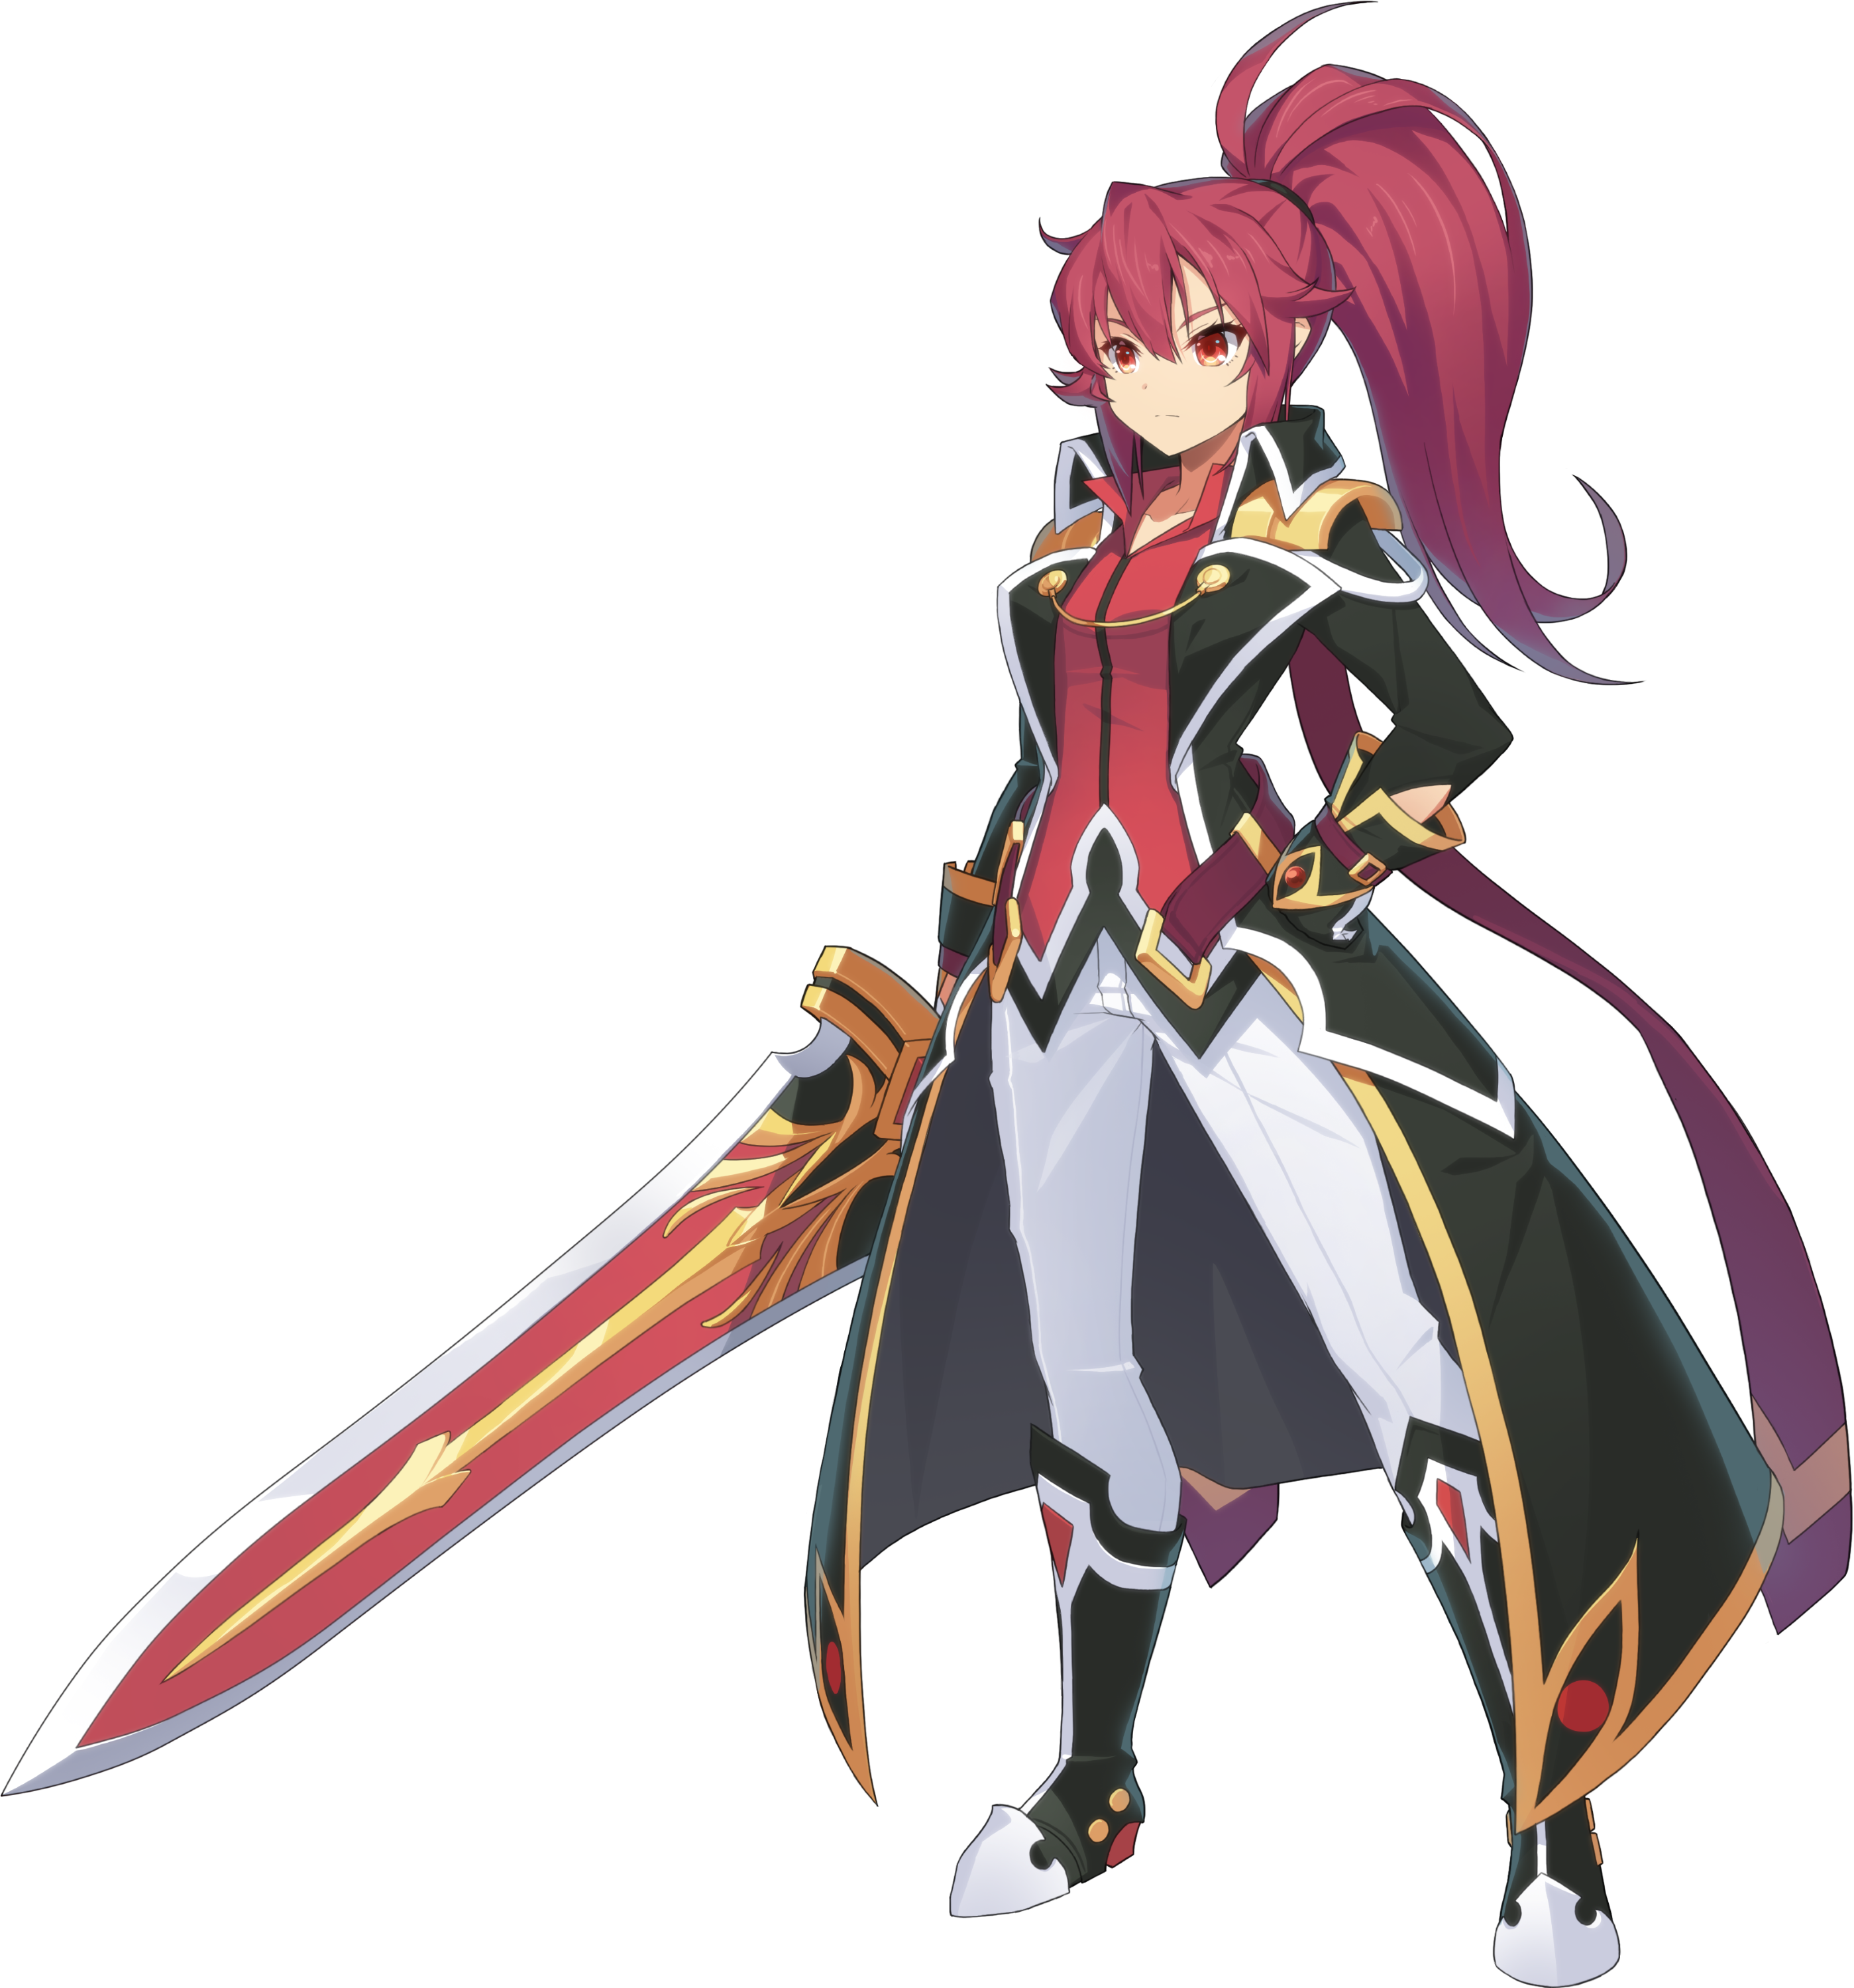 Elesis/Grand Chase Dimensional Chaser | Grand Chase Wiki | FANDOM